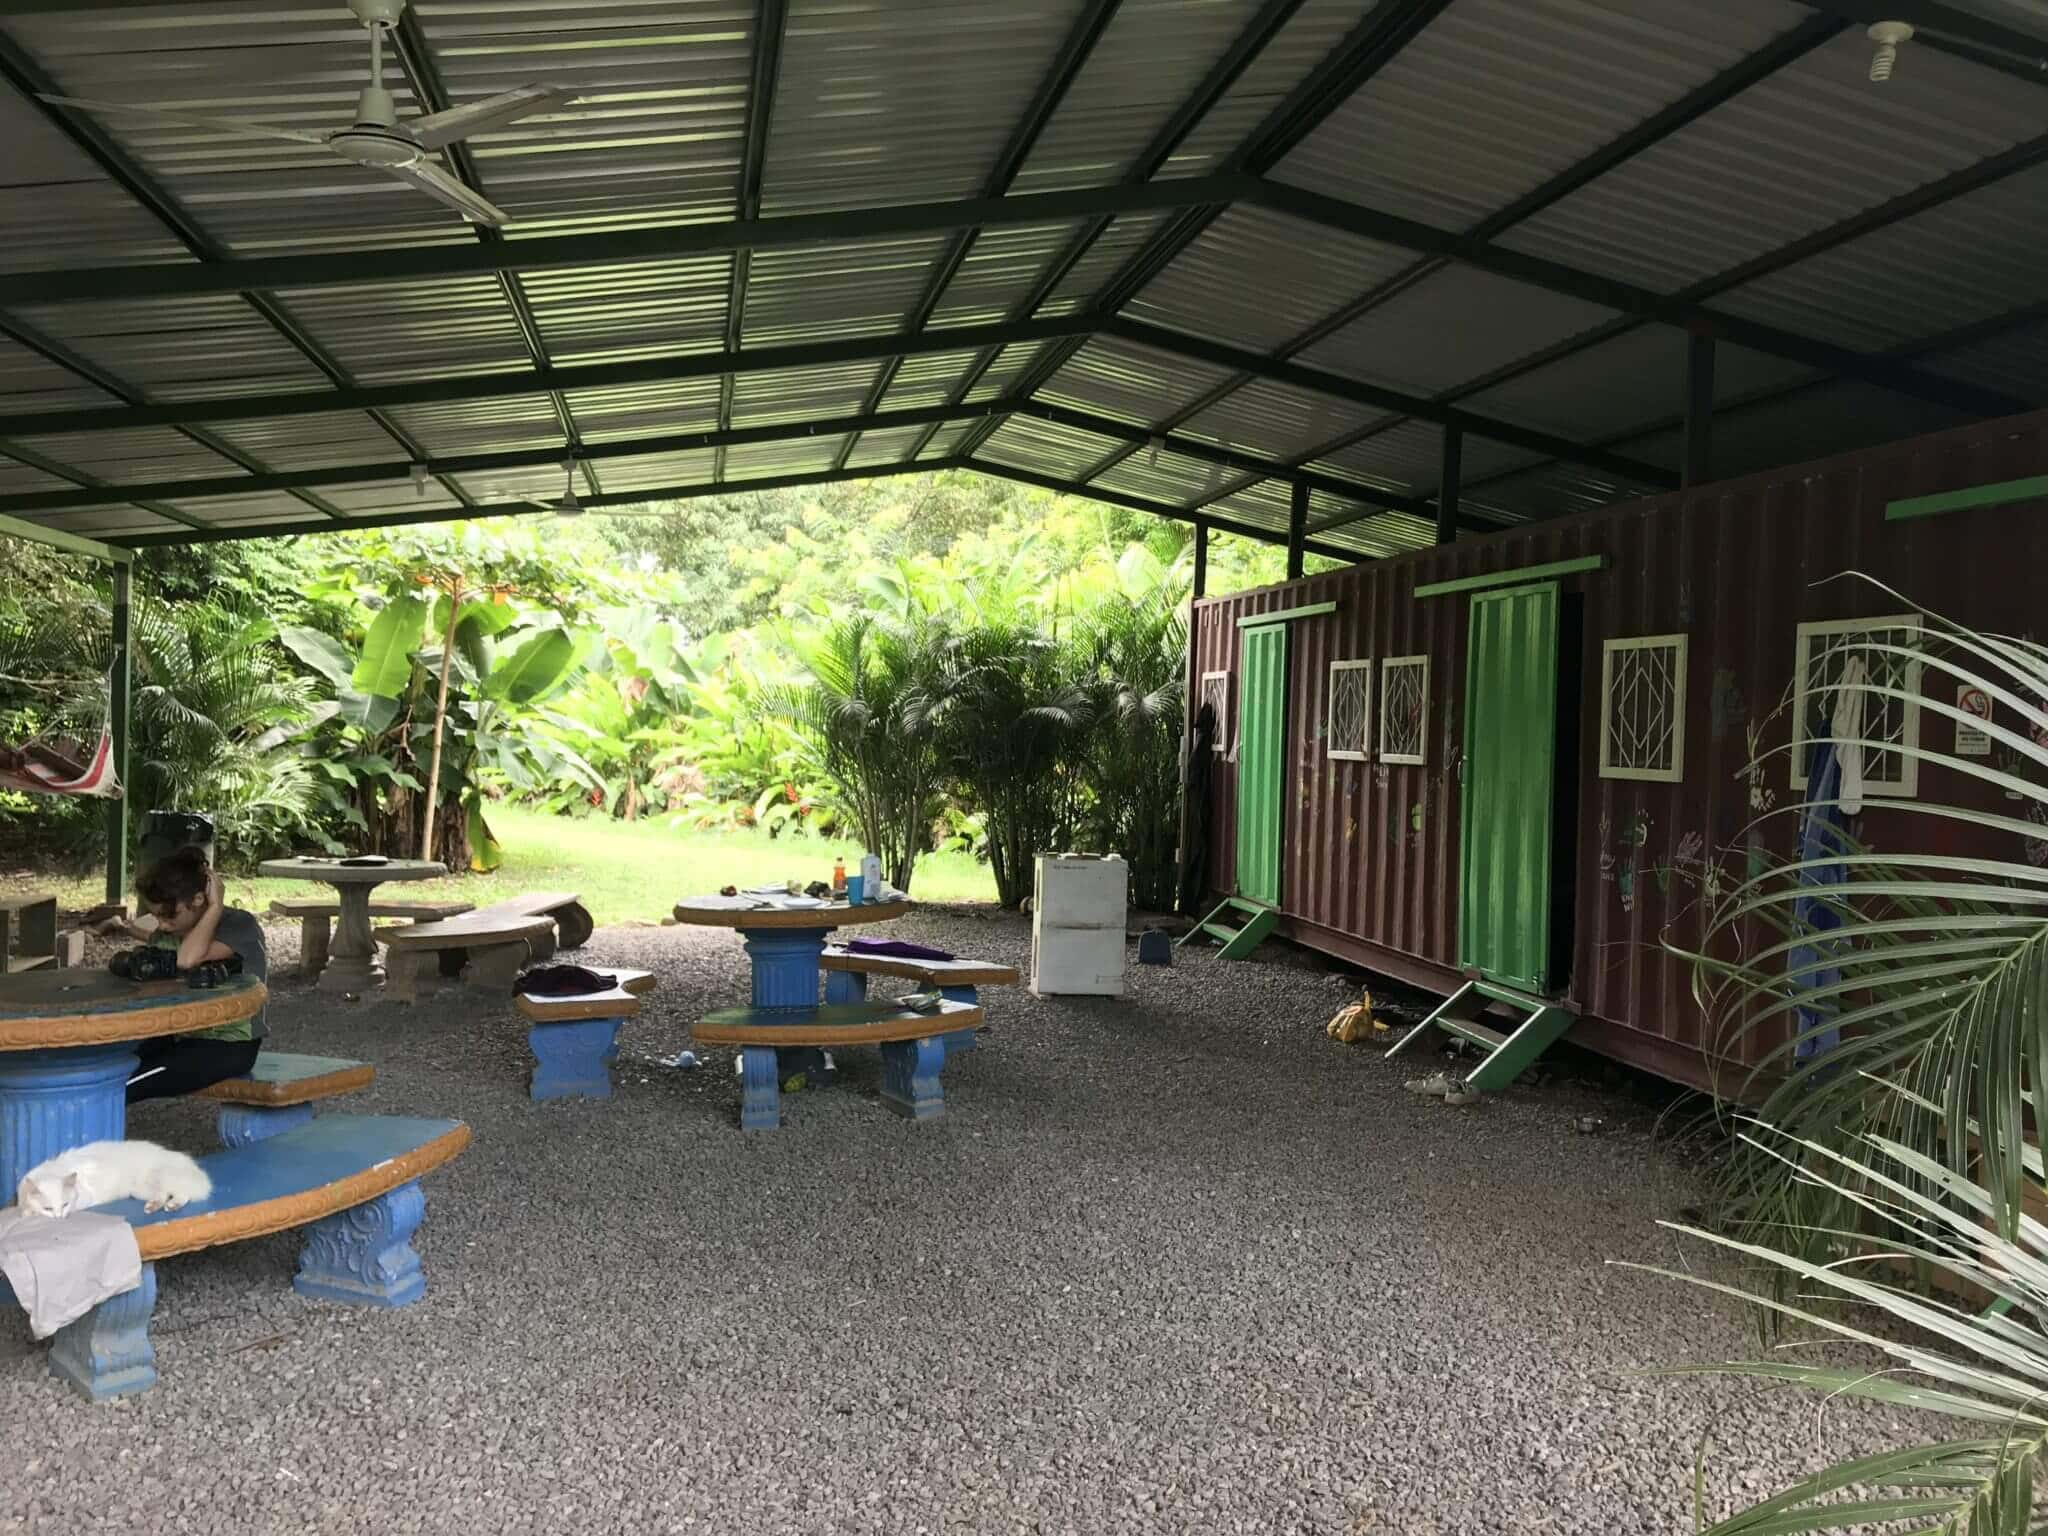 NATUWA volunteer facilities